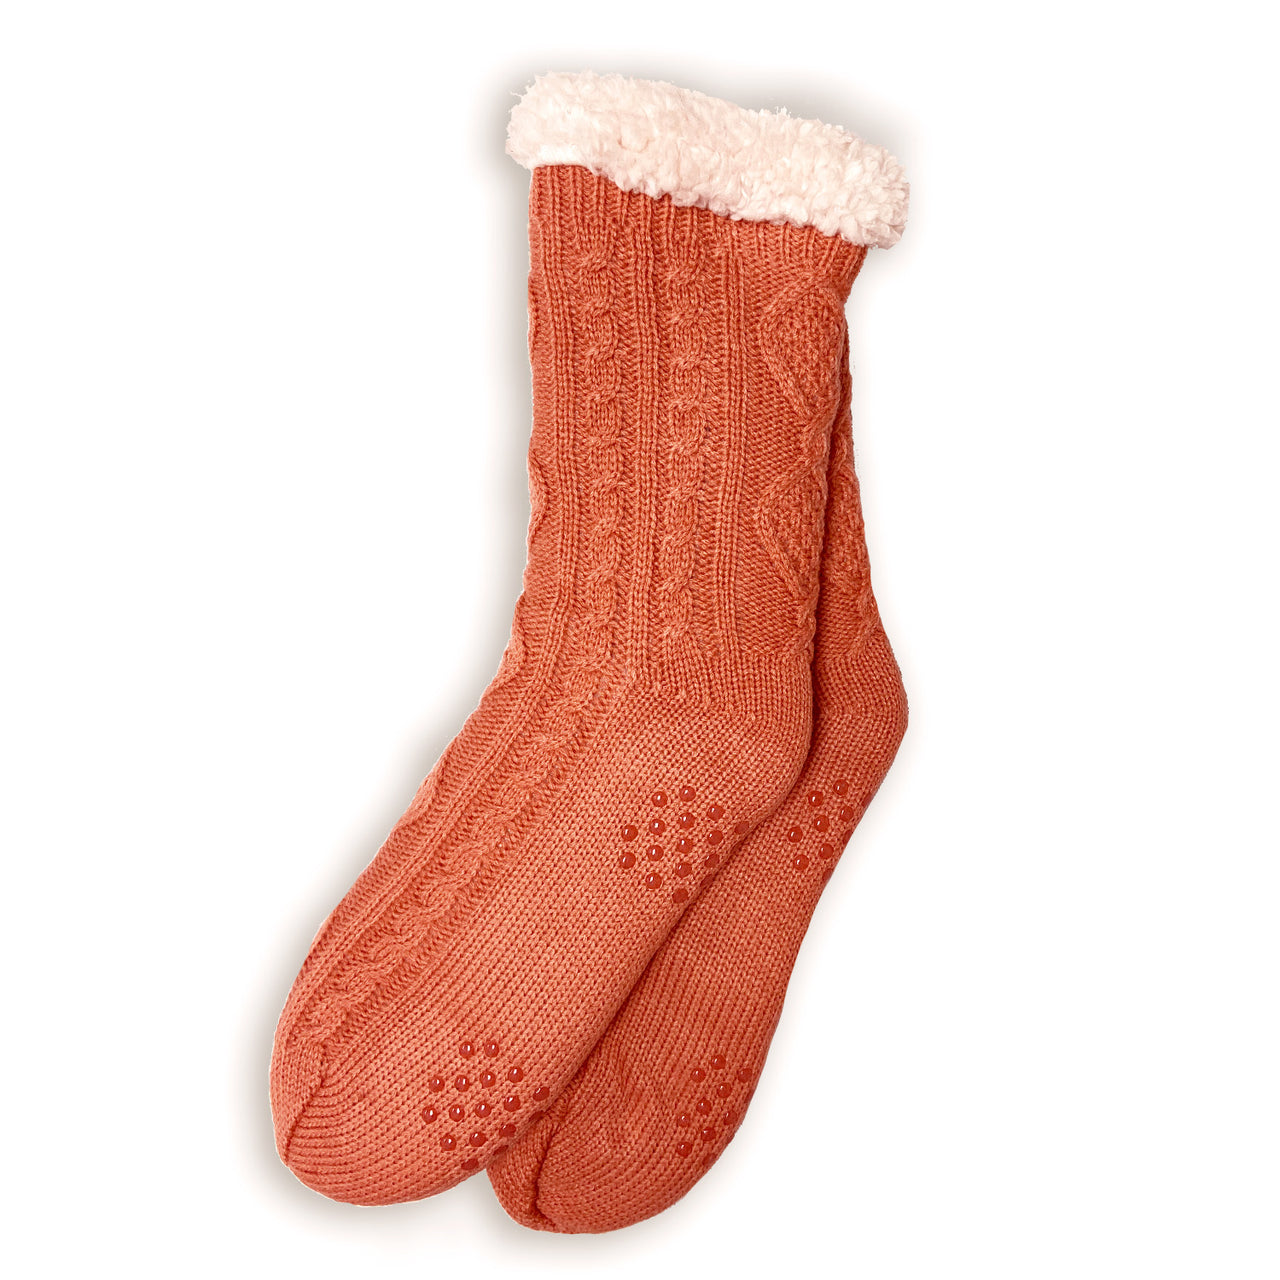 *PREORDER* Plush Warm Crew Sock | Cable Knit | With Grips | Orange - CHERRYSTONE